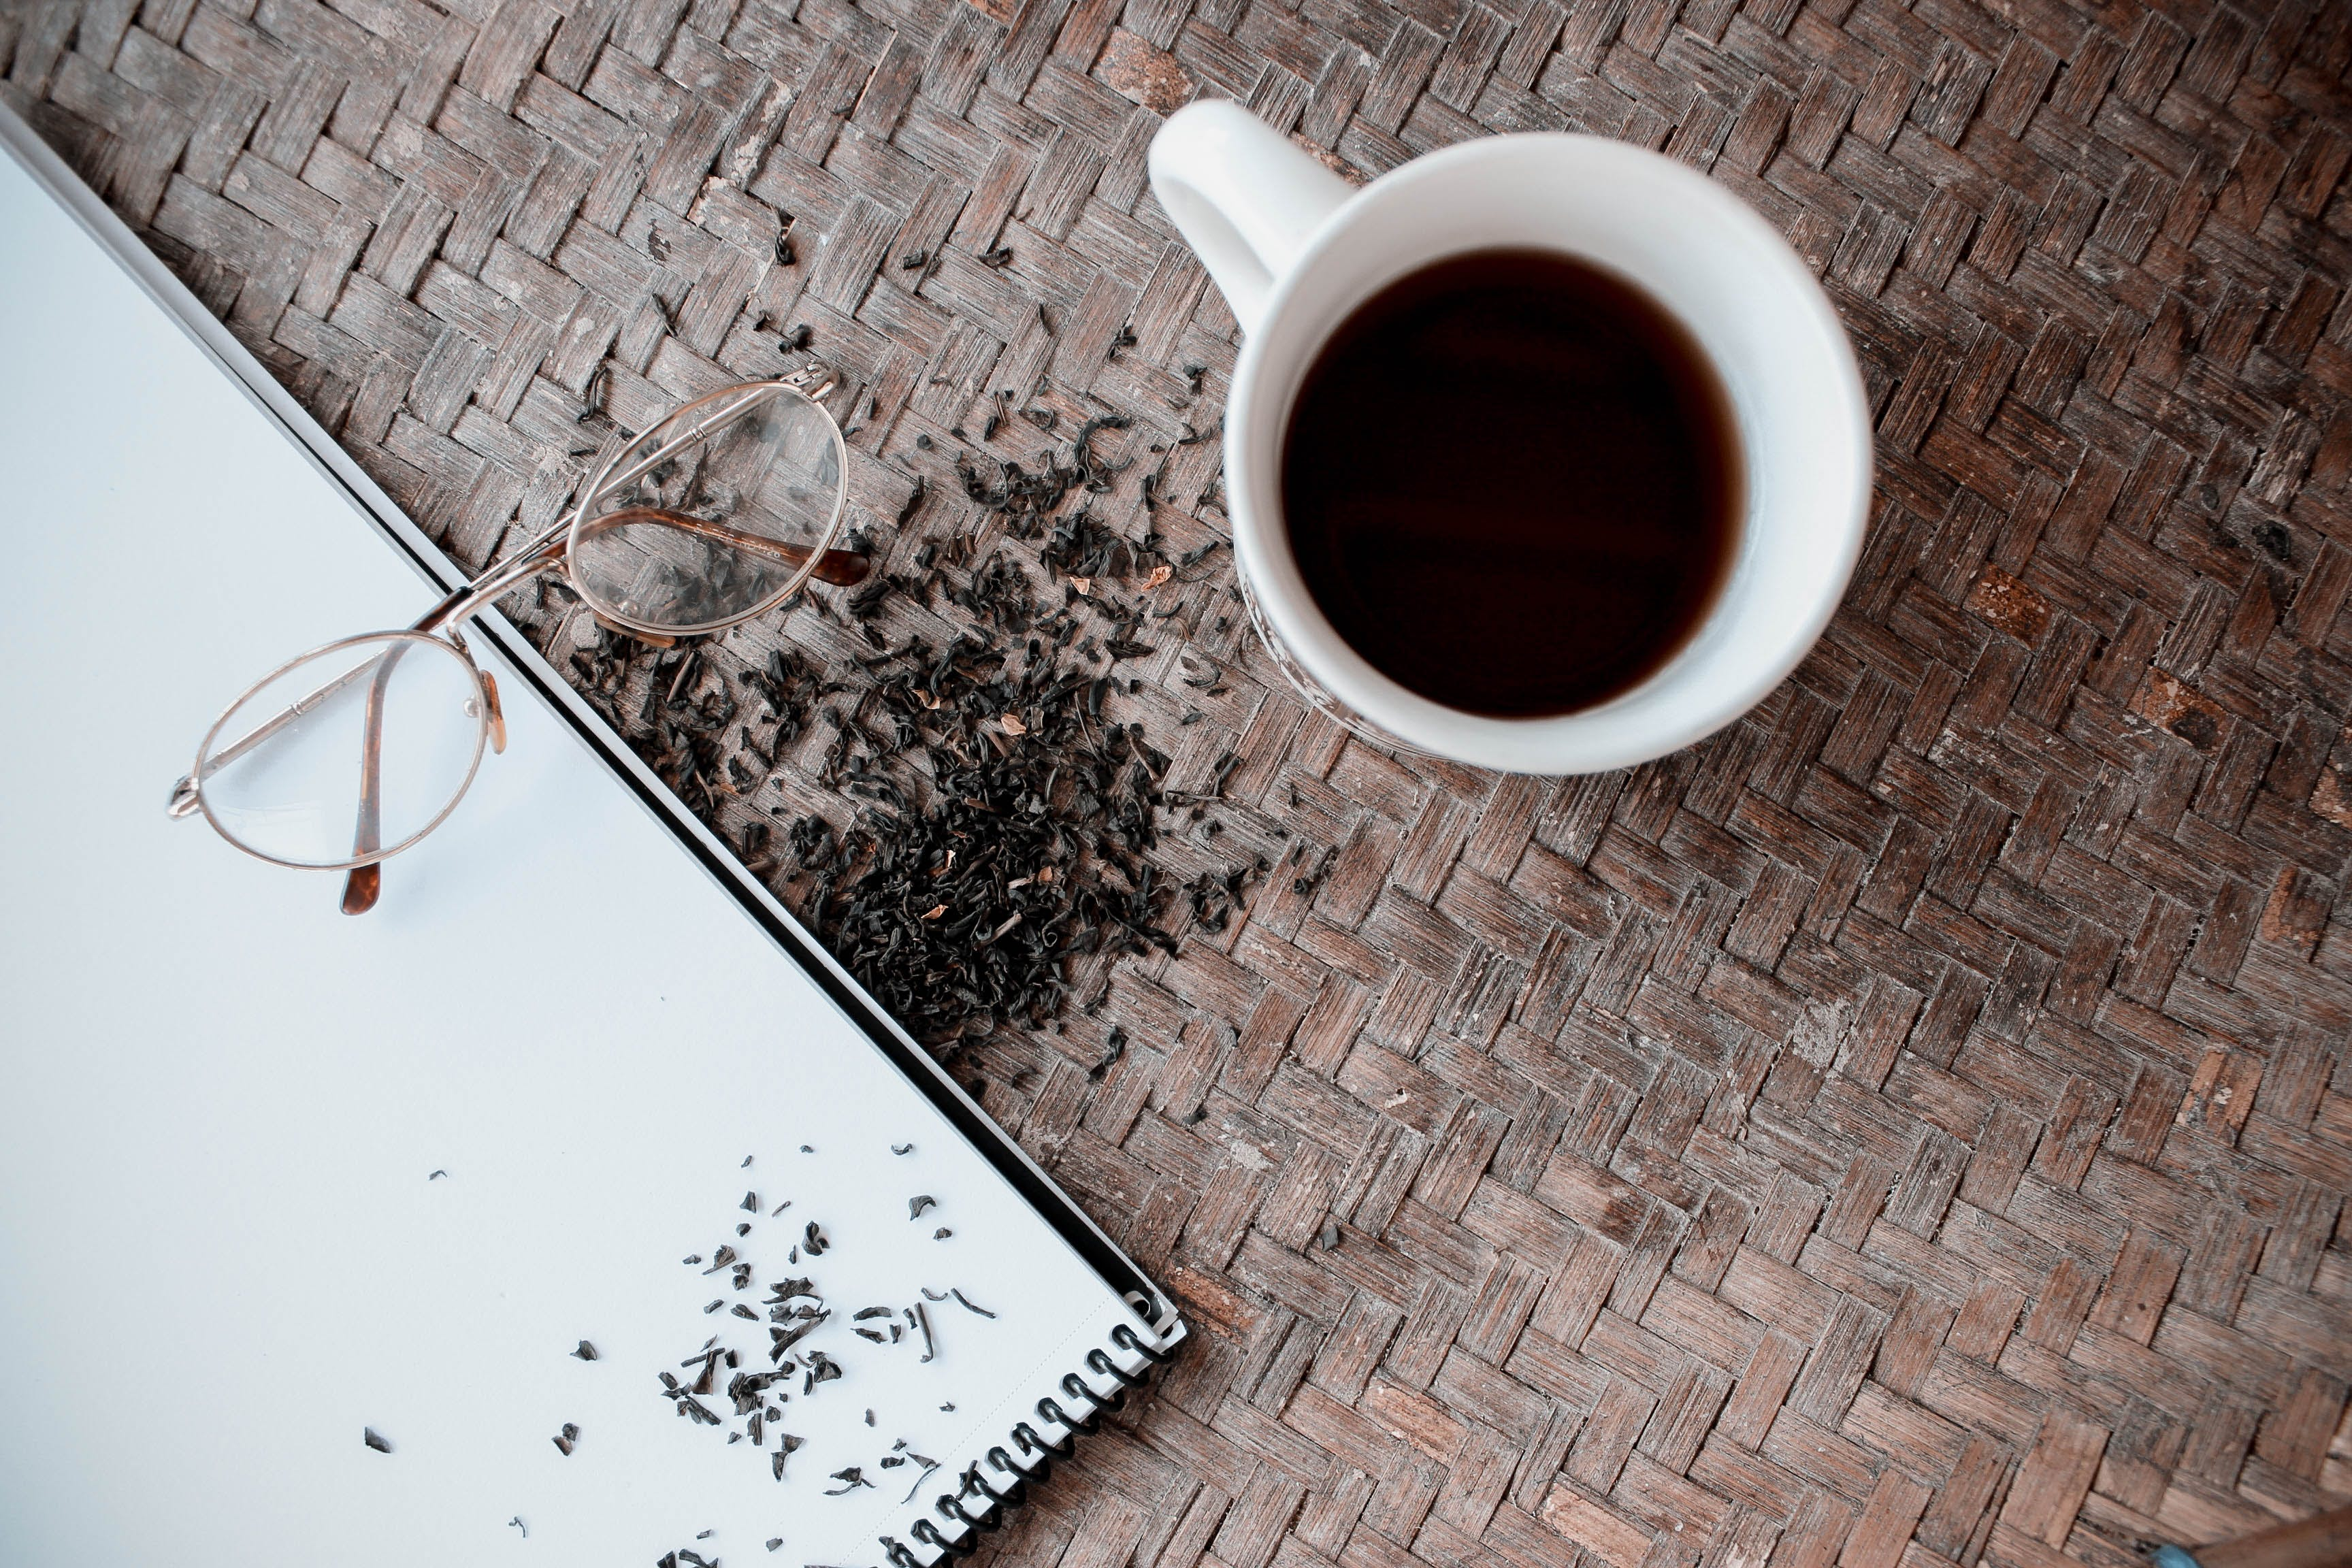 Free stock photo of coffee, dried tea, drinks, eye glasses